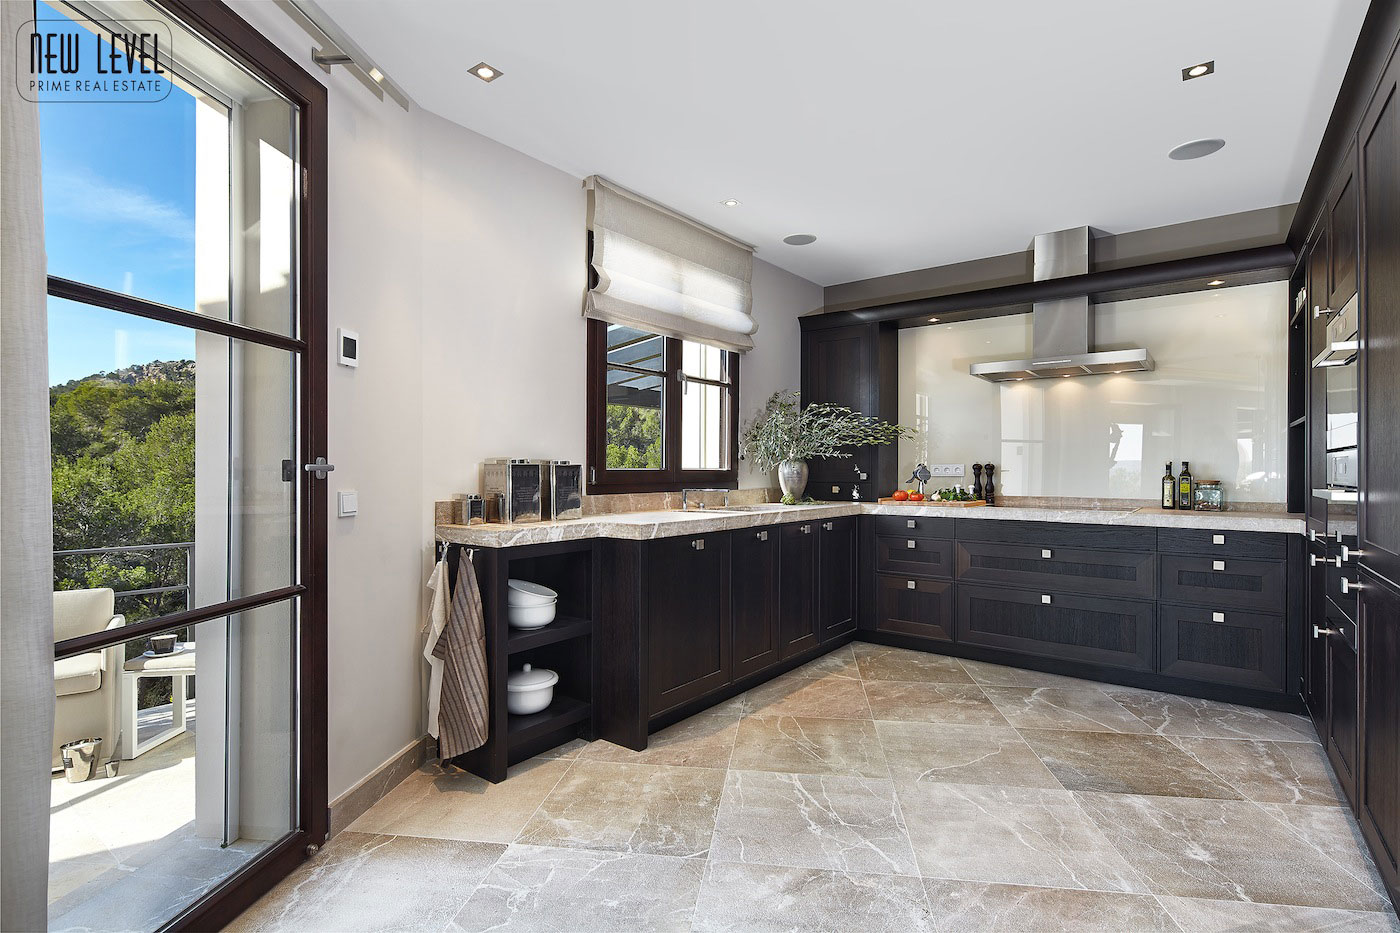 Dark Wood Kitchen, Contrasting Marble Floor Tiles, Fabulous Villa in Puerto de Andratx, Mallorca